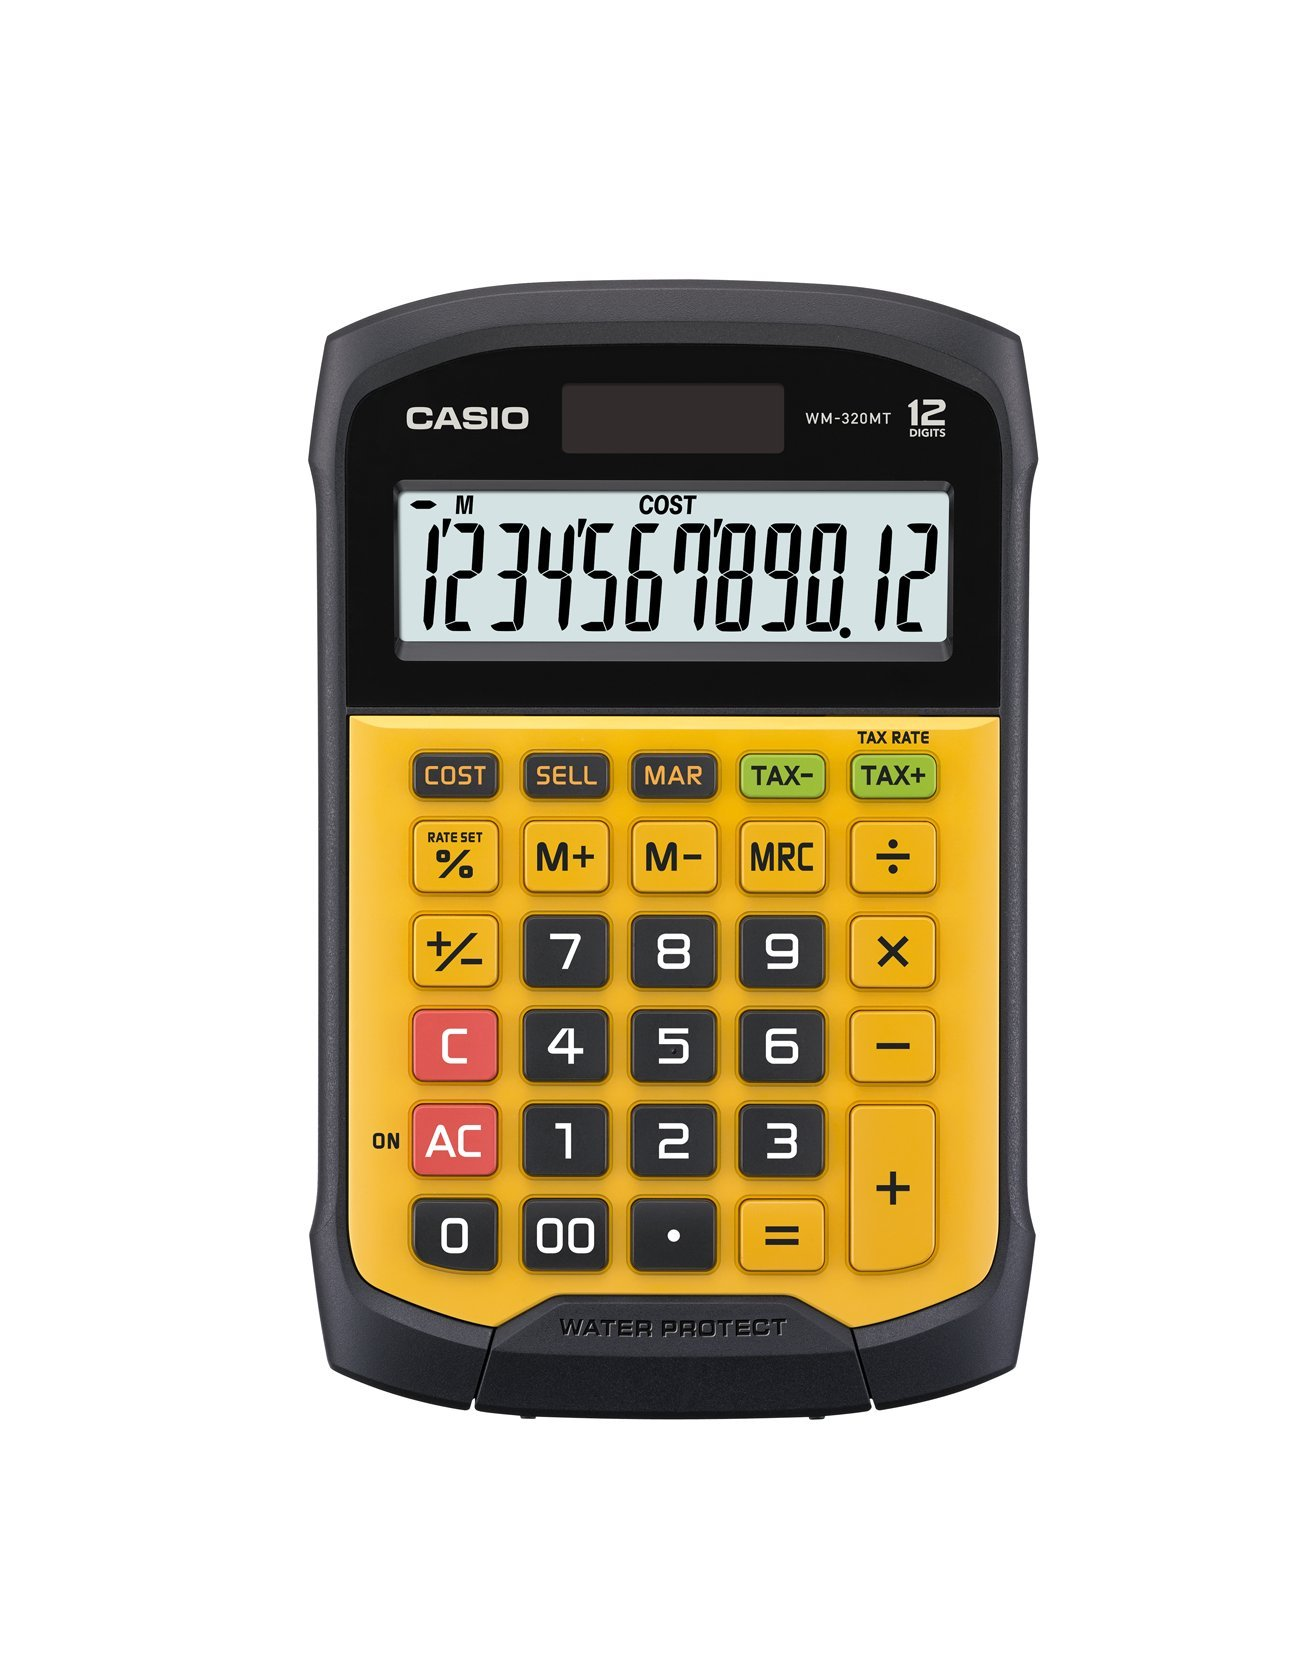 Casio WM-320MT Calculator, 9.27''L x 6.2''W x 1.42''H Yellow/Black